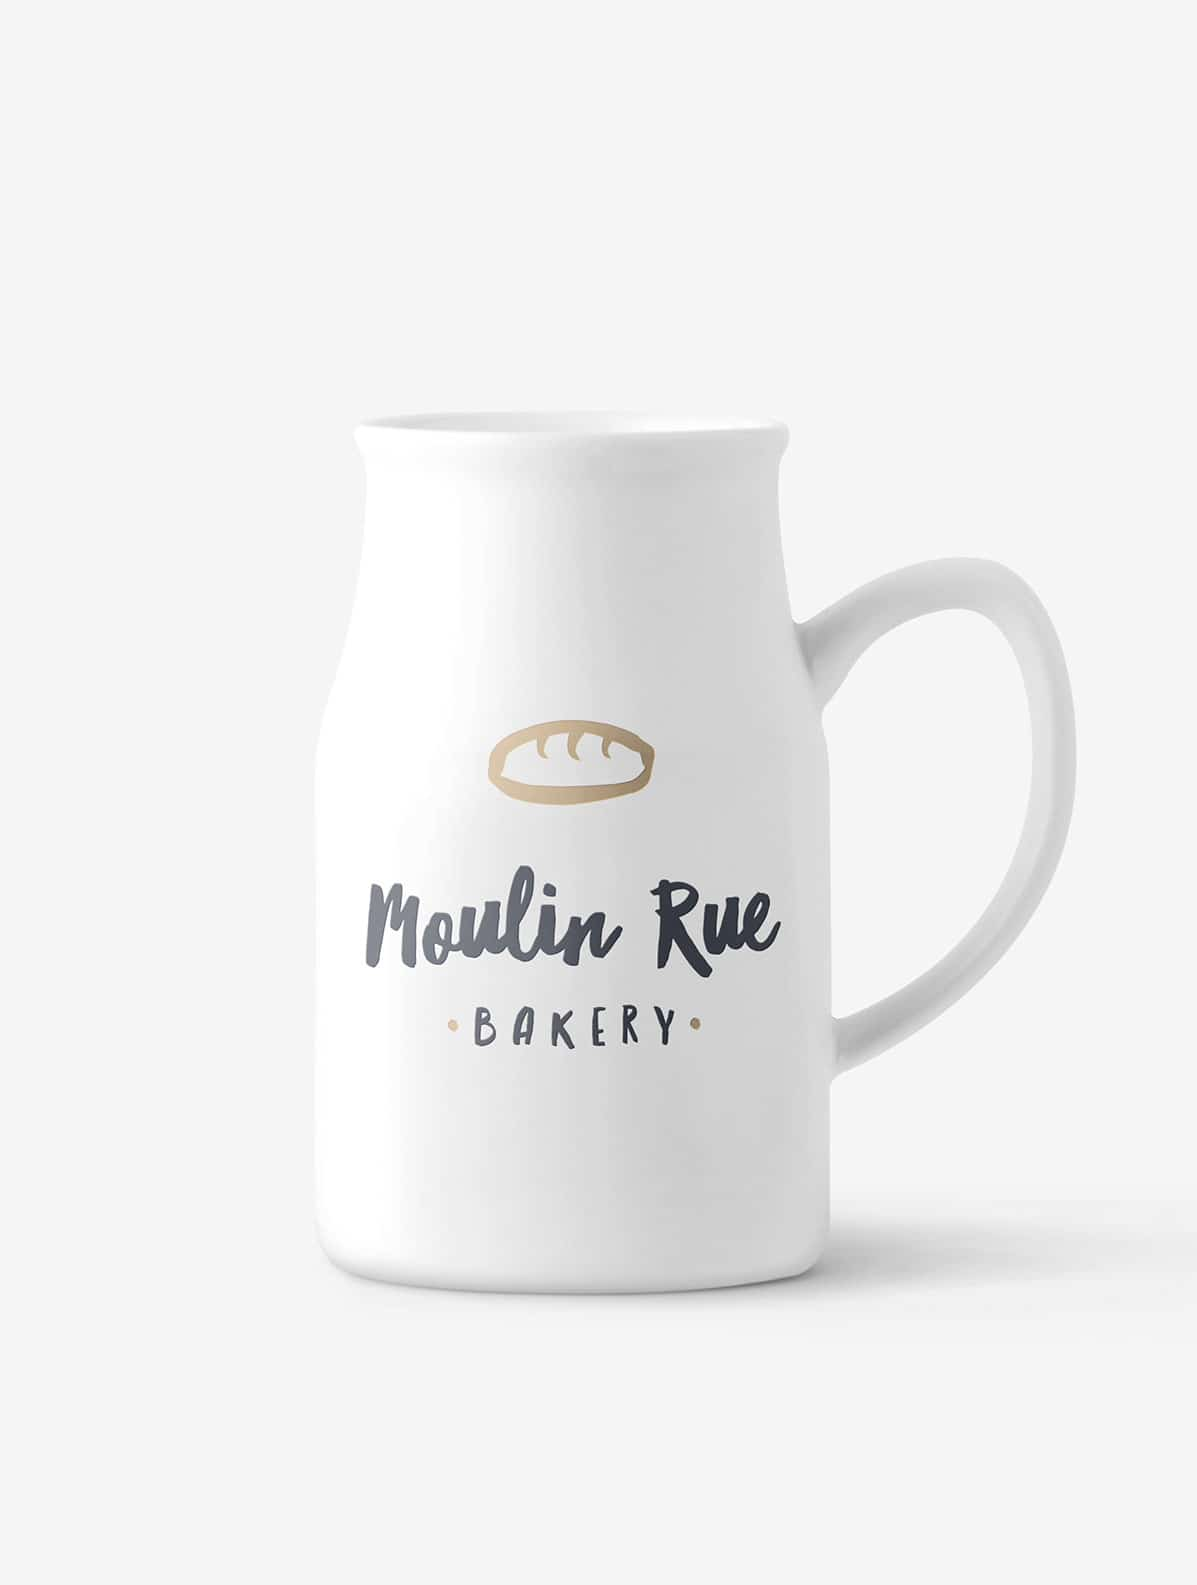 Branded milk jug for a cafe